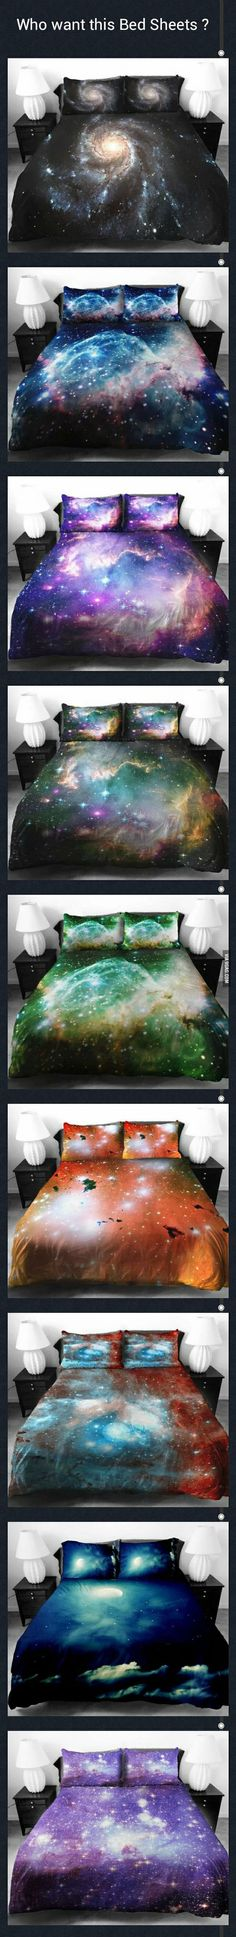 Who want this Universe Bed Sheets? Shut up & take my money!